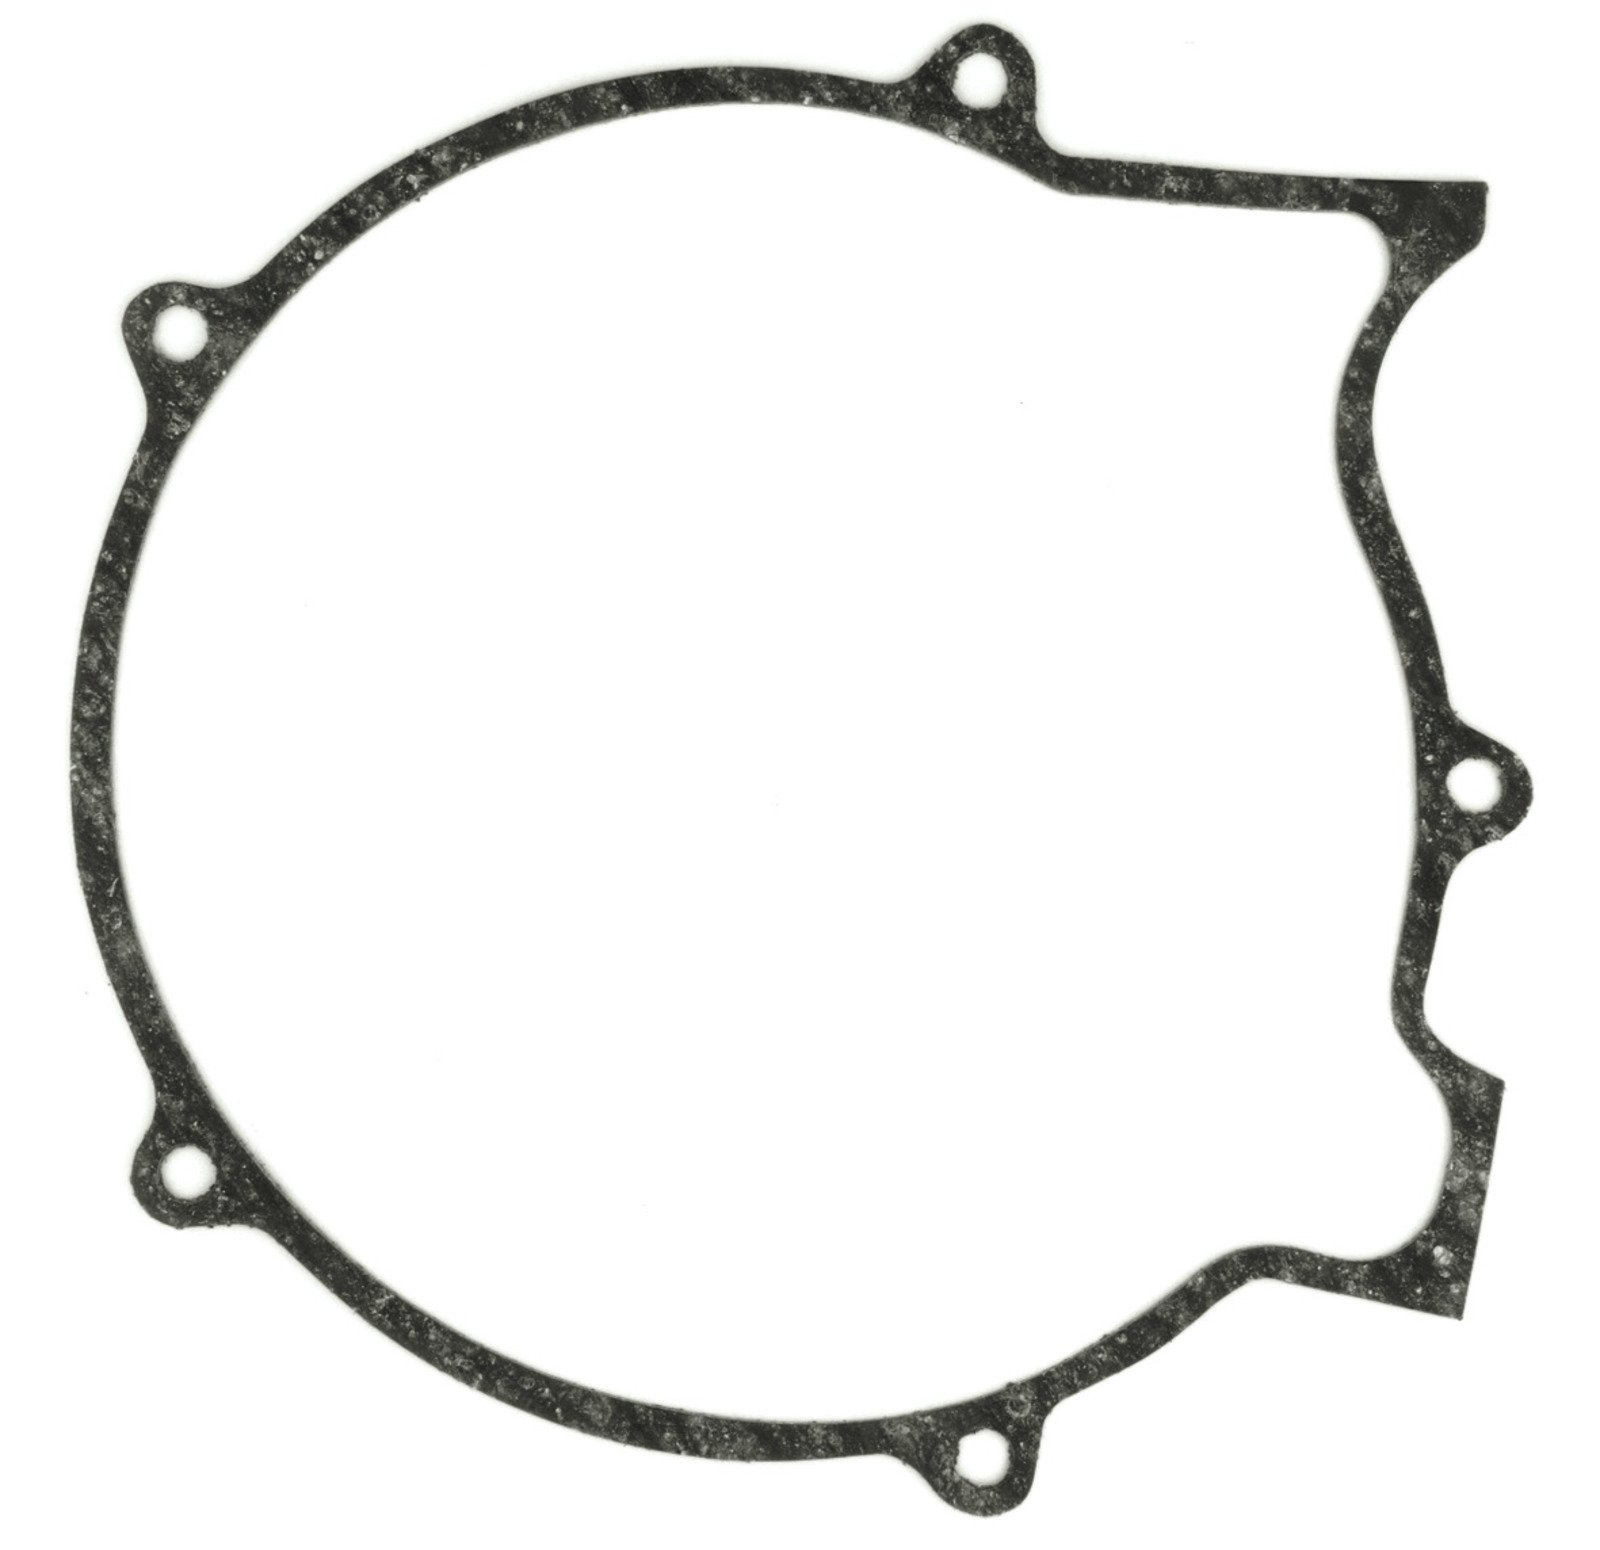 Engine Dress (Covers & Supplies)